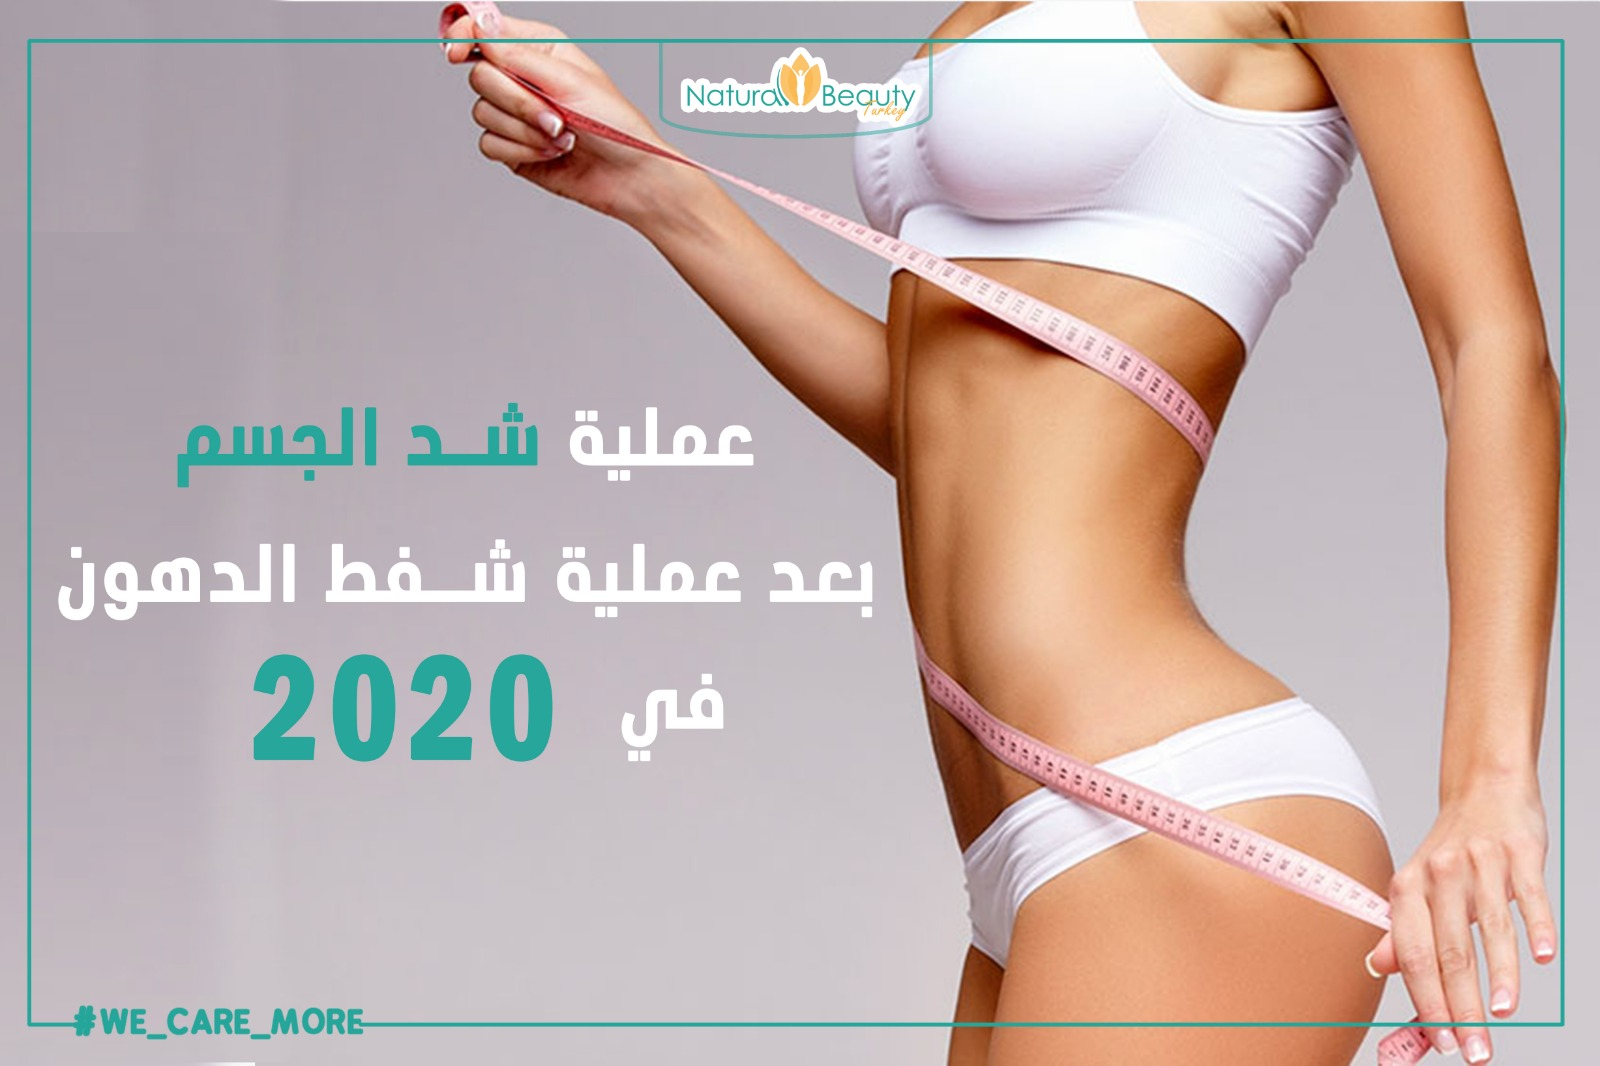 Naturalbeauty Tighten Skin After Liposuction In 2020